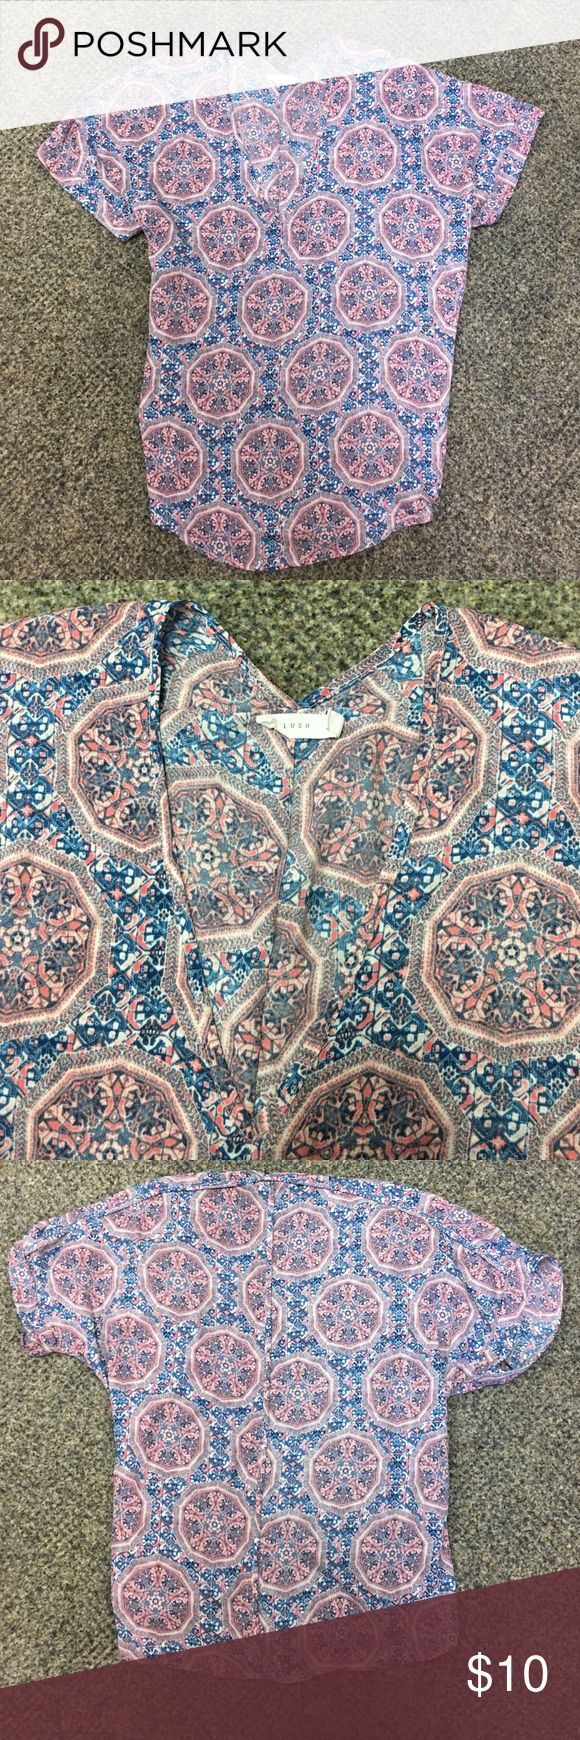 Pink and Blue Kaleidoscope Pattern Blouse Pink and blue kaleidoscope pattern loose flowing blouse. Perfect condition. From Dry Goods. Size medium. Lush Tops Blouses